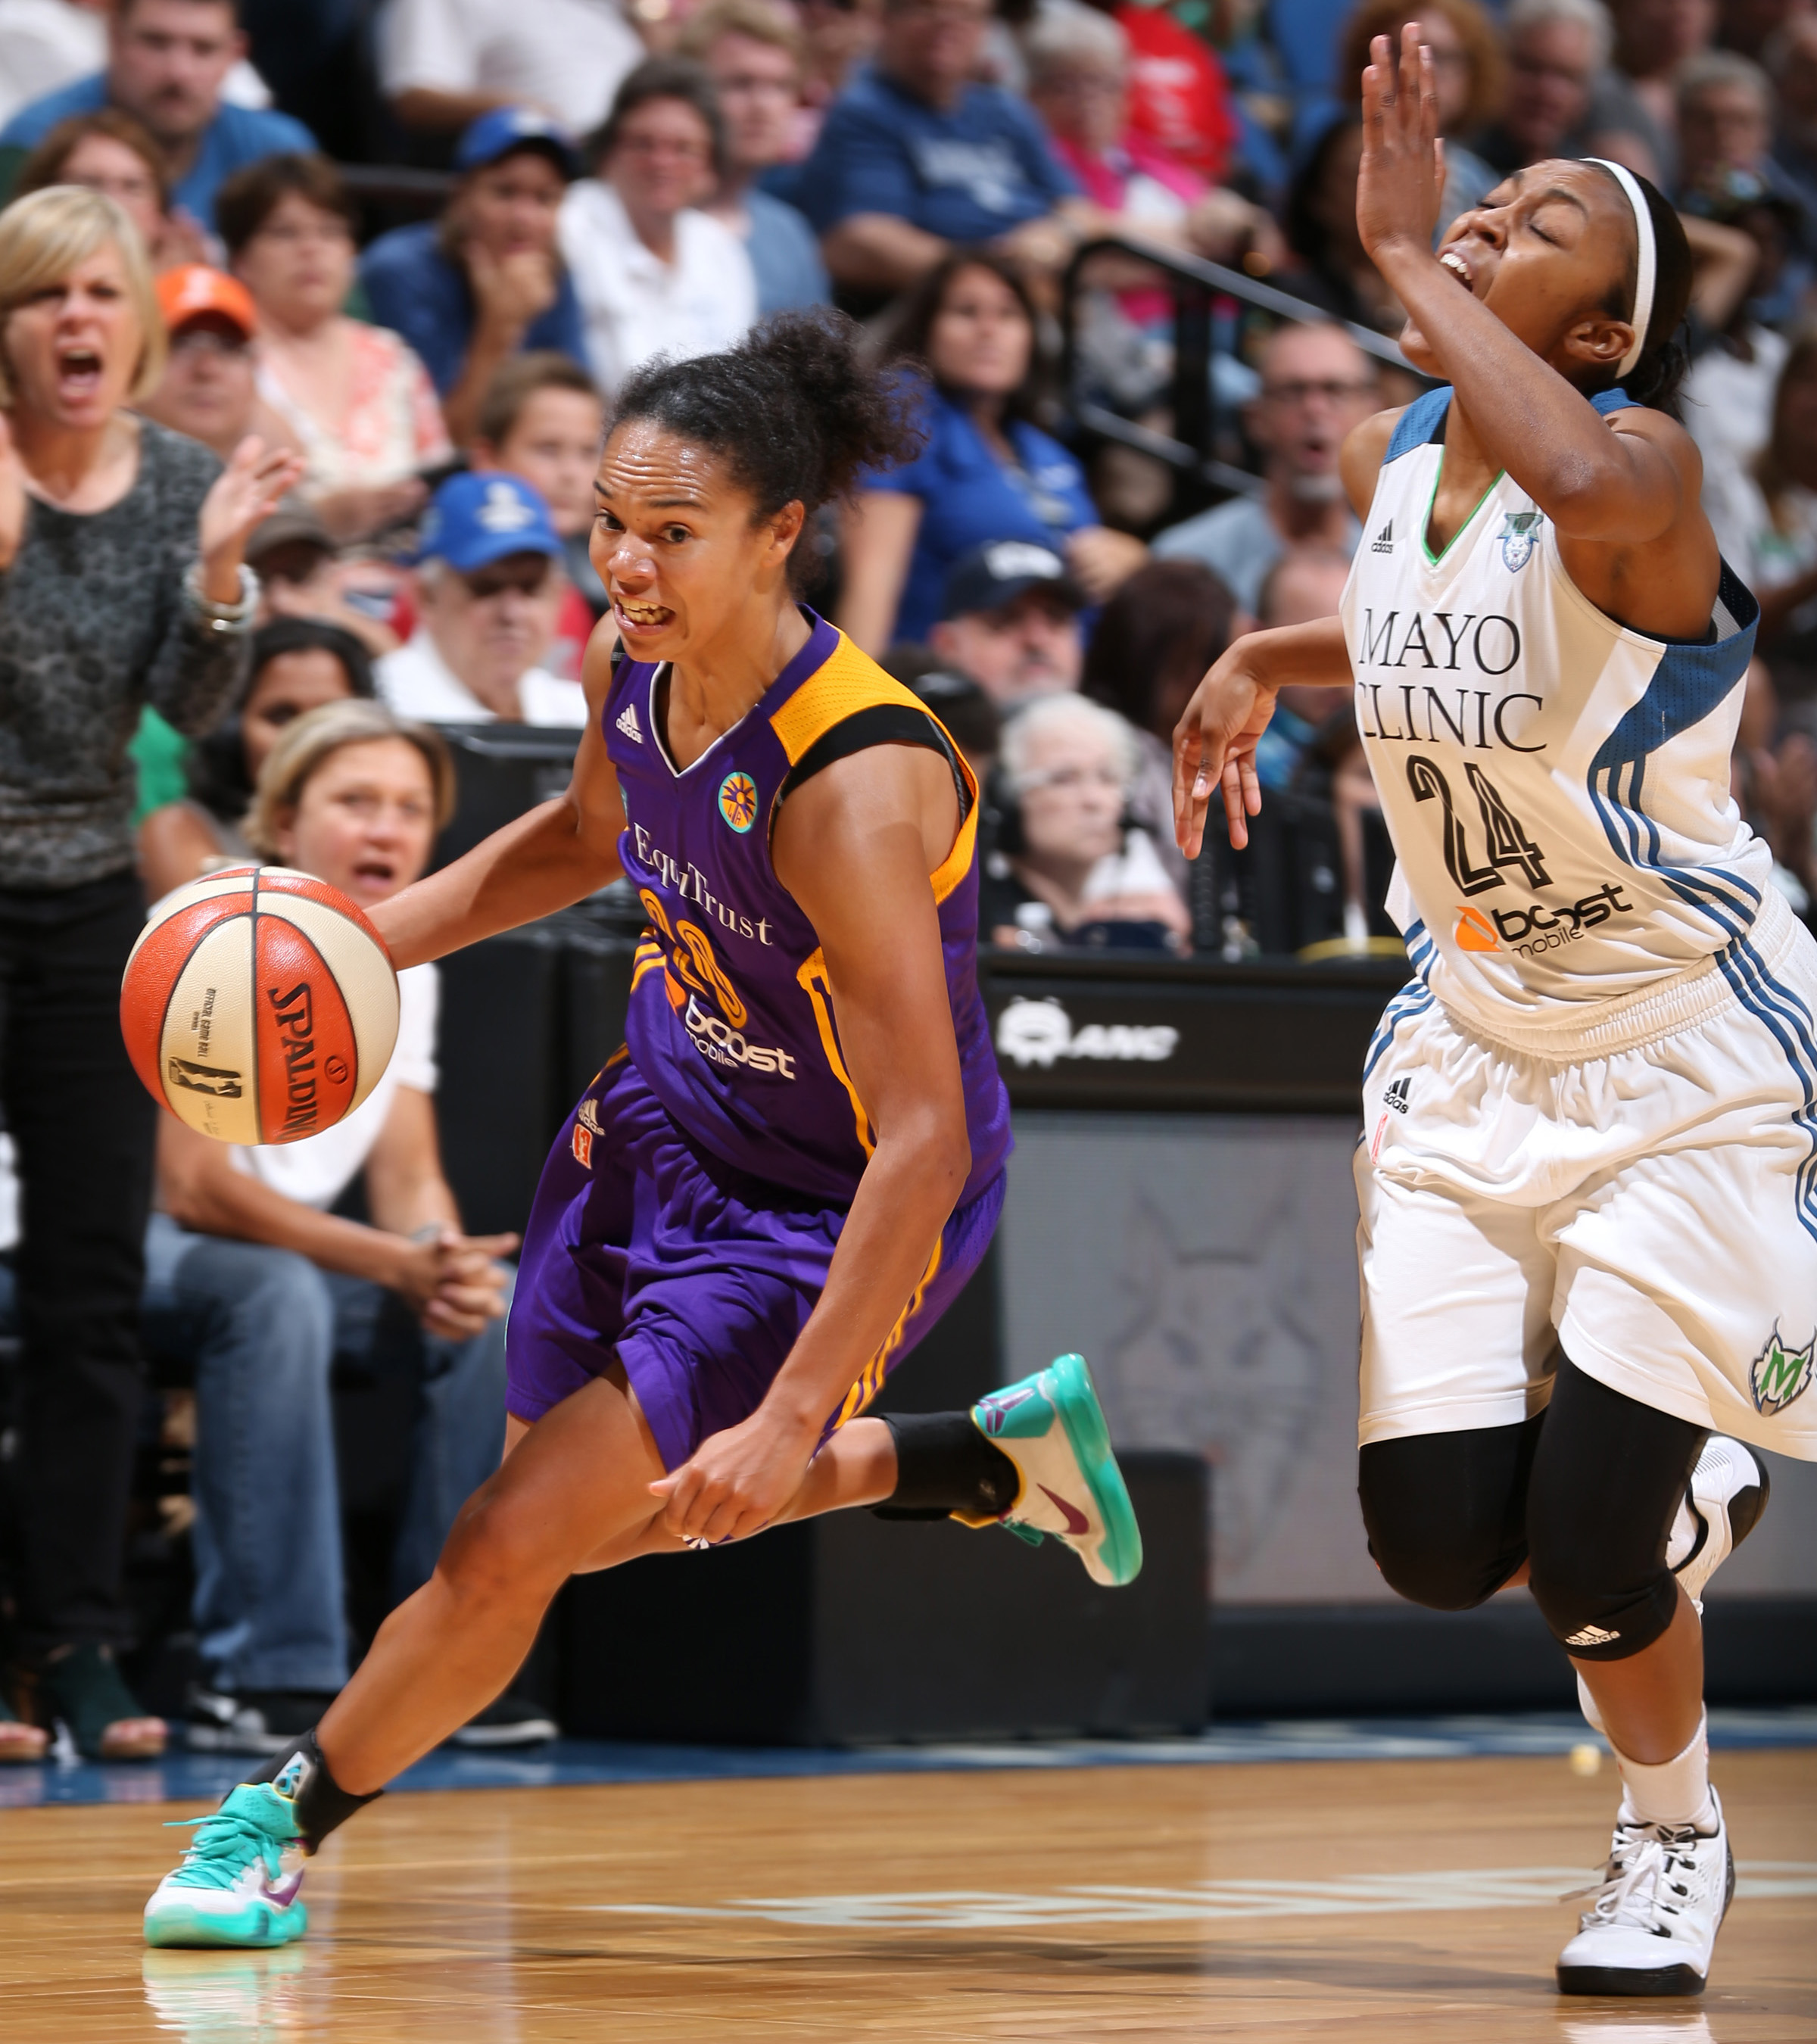 Sparks guard Kristi Toliver played well, finishing with 14 points on 5-of-13 shooting (38 percent) in 33 minutes of play.